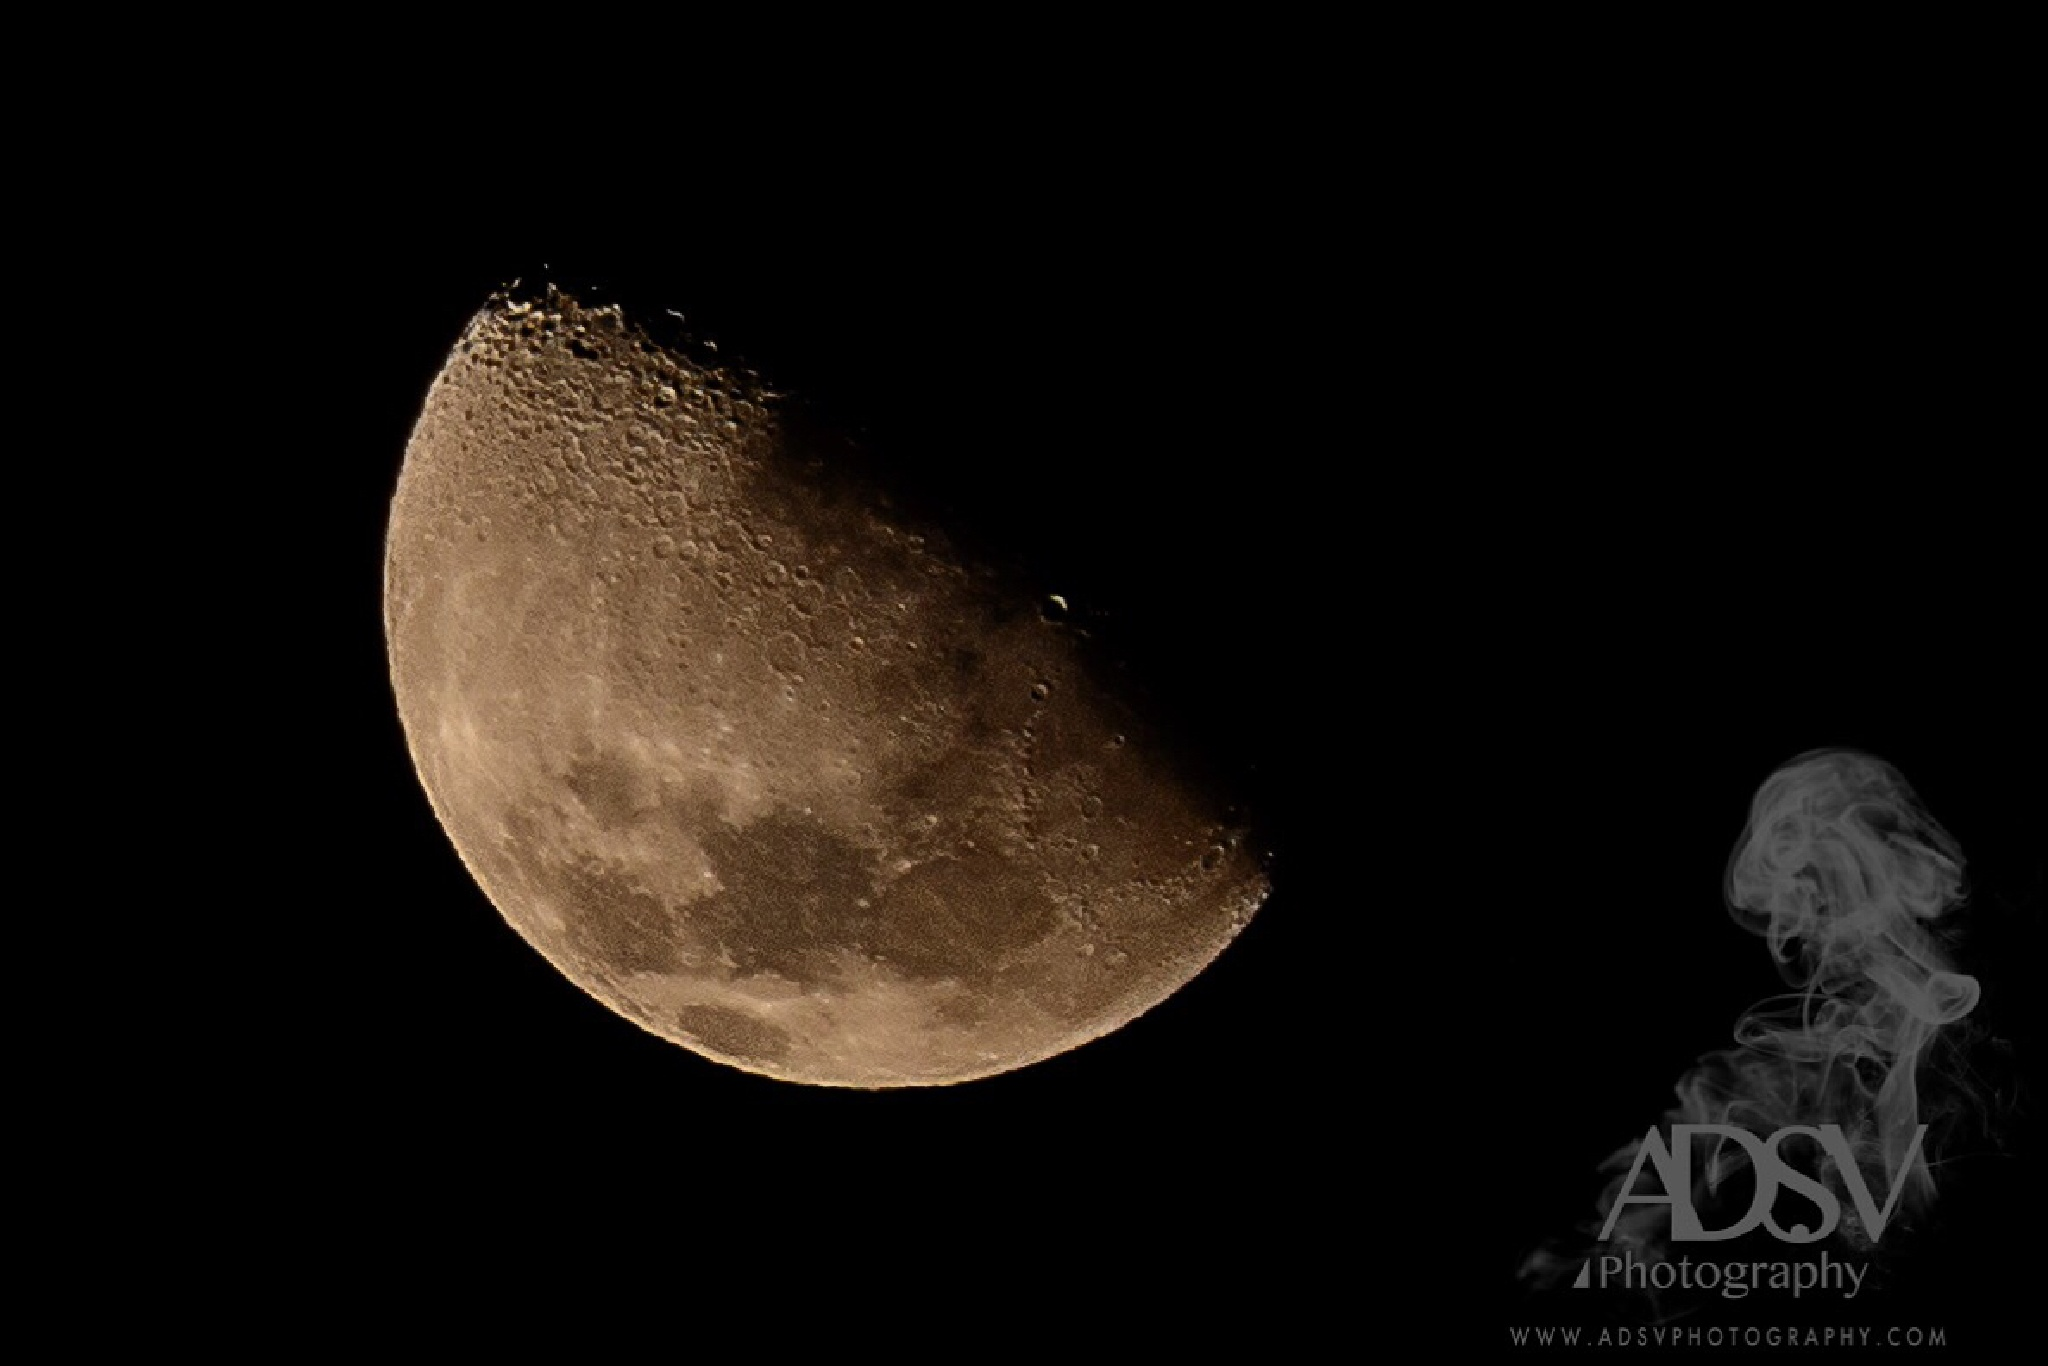 Moon by ADSV Photography